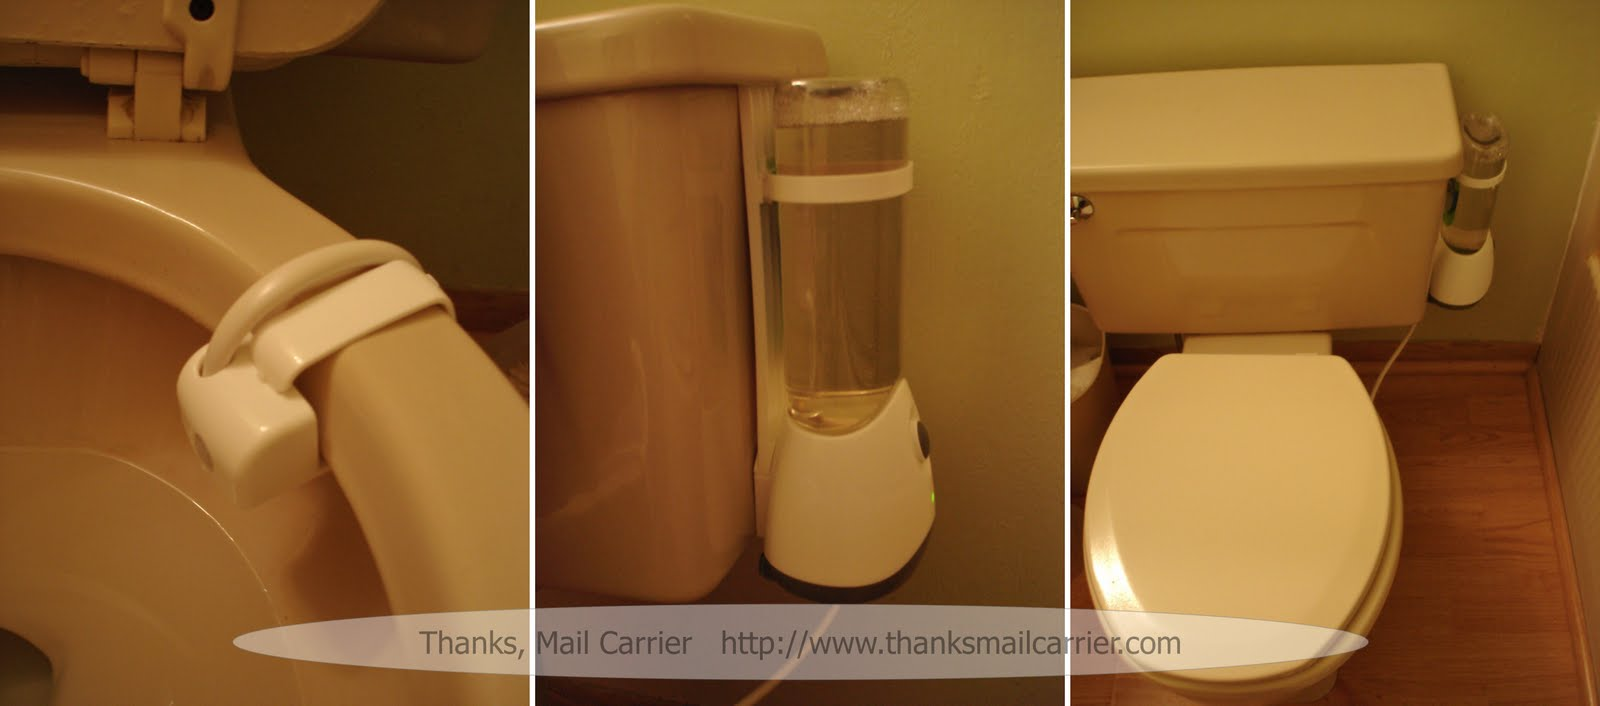 Thanks Mail Carrier Scrubbing Bubbles Automatic Toilet